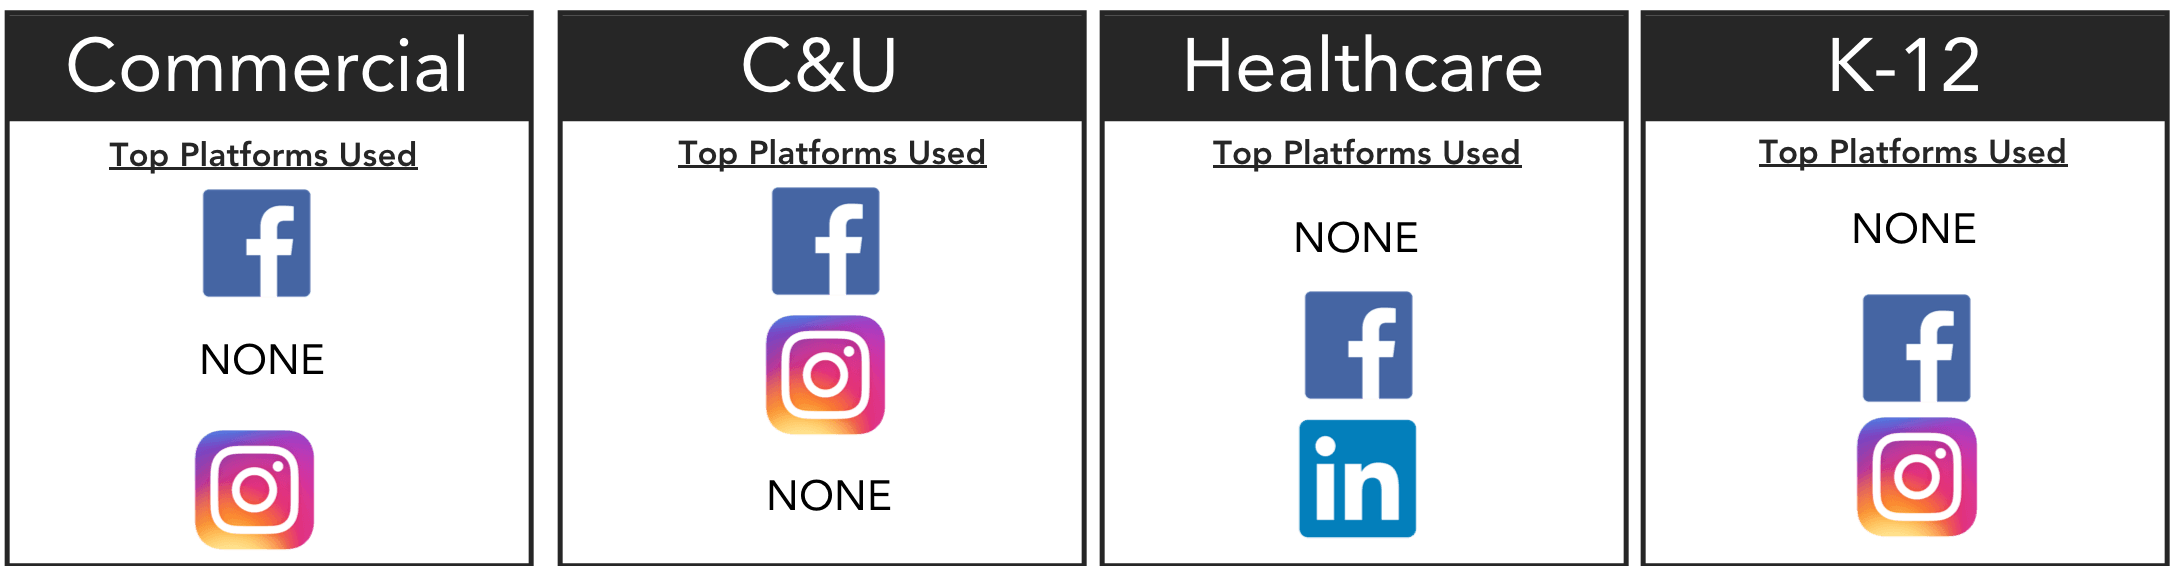 Facebook is the most popular social channel–likely due to its longevity in the marketplace.